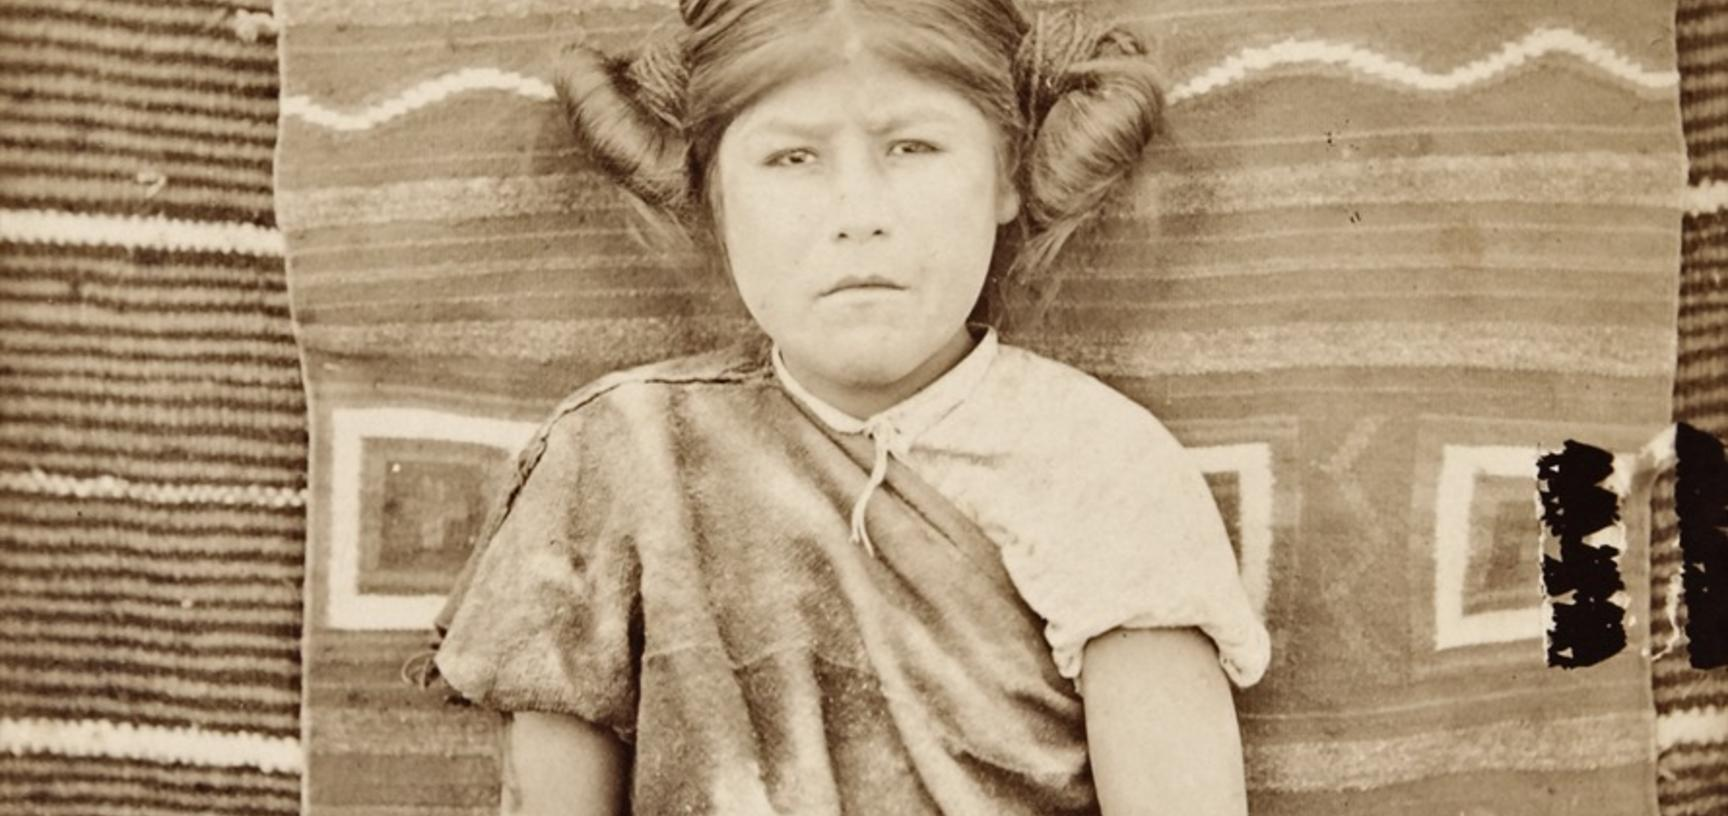 Portrait of a thirteen-year-old Hopi girl named 'Modisi', pictured sitting in front of a Navajo blanket.